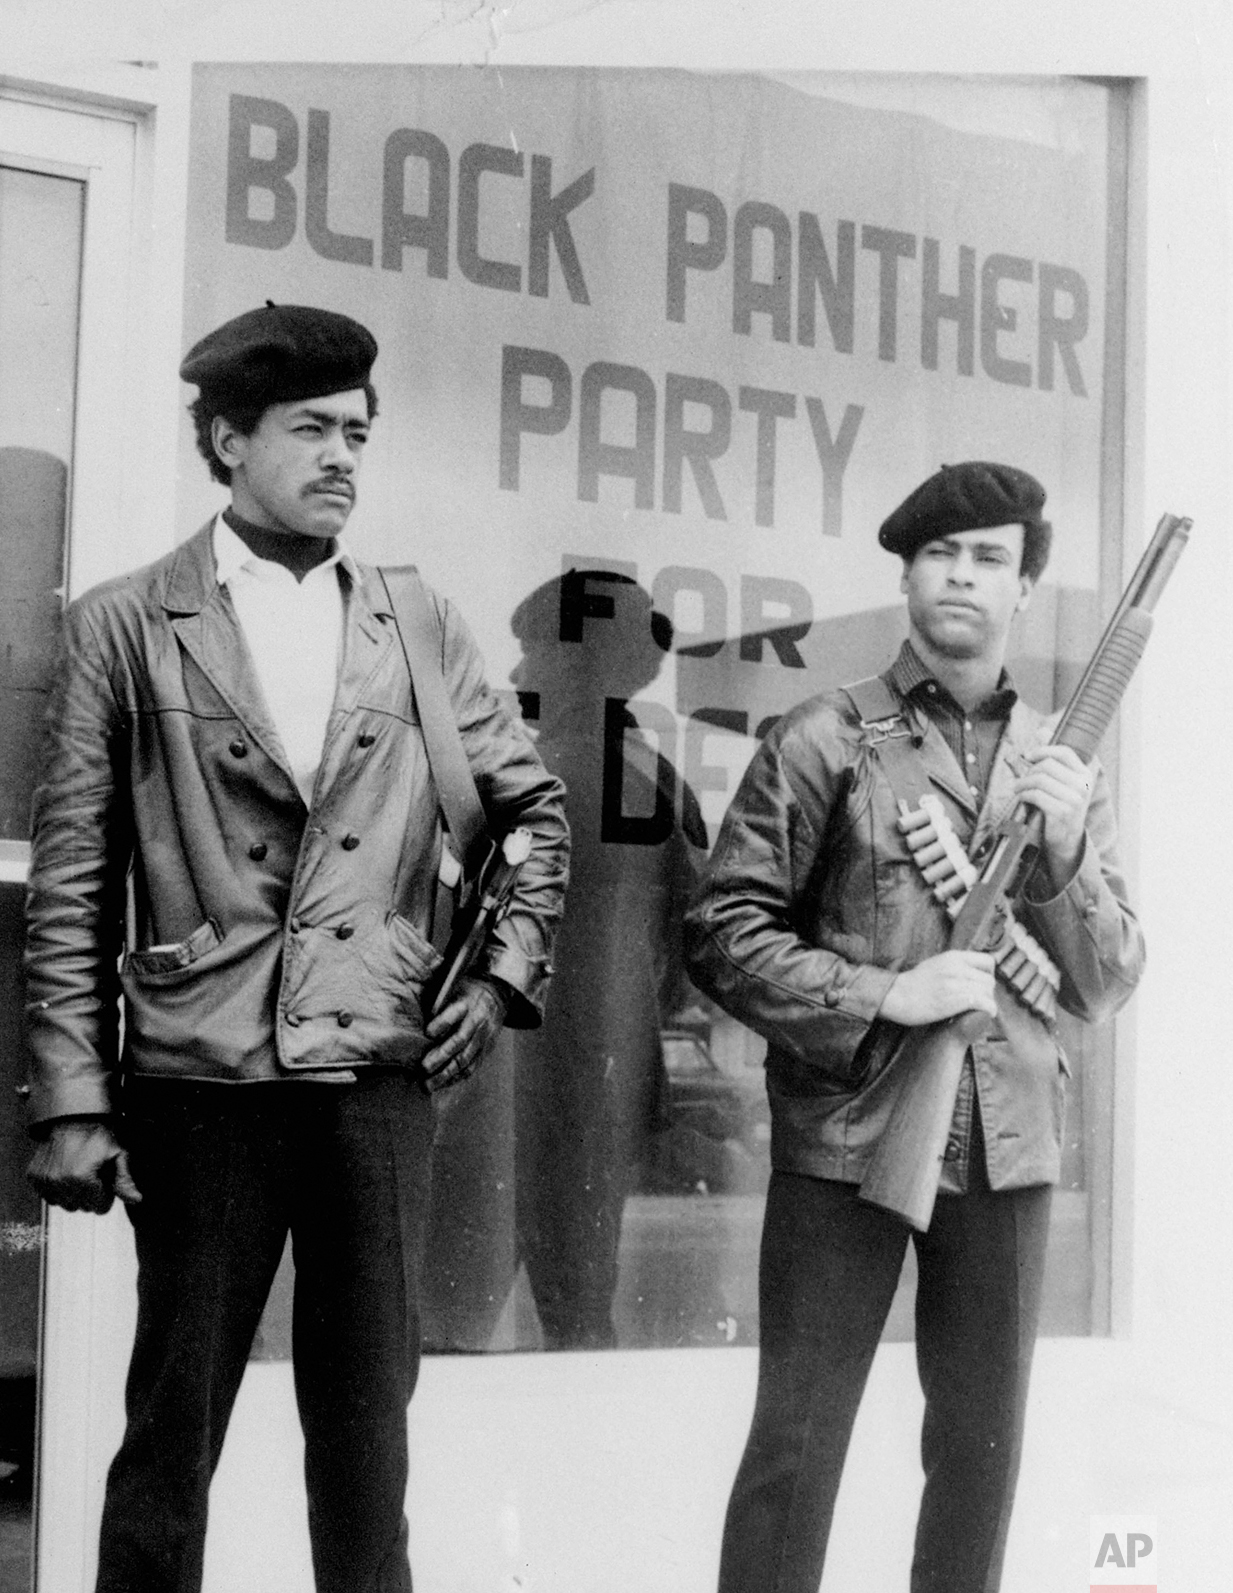 In this undated photo, Black Panther national chairman Bobby Seale, left, wearing a Colt .45, and Huey Newton, right, defense minister with a bandoleer and shotgun are shown in Oakland, Calif. Hundreds of former Black Panthers from around the world are expected to gather in Oakland, Calif., for a four-day conference that started Thursday, Oct. 20, 2016. (The San Francisco Examiner via AP)